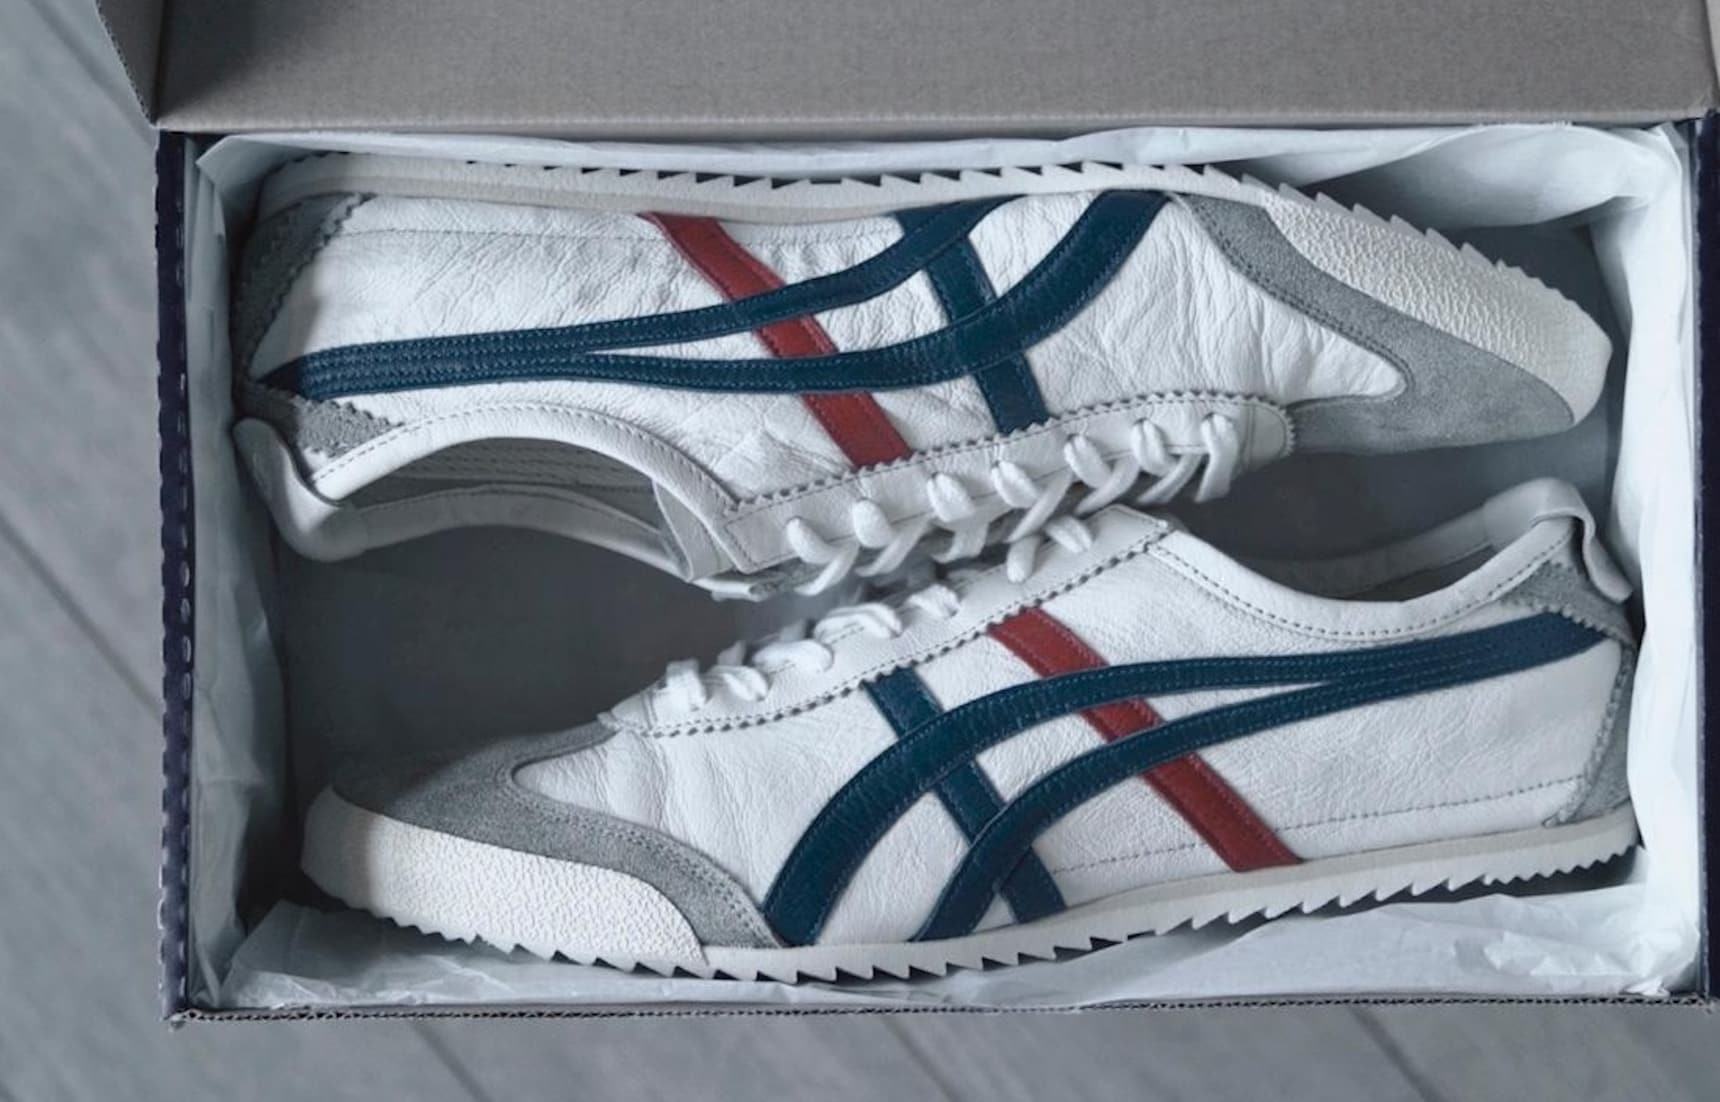 Onitsuka Tiger: Shoes Running Around the World